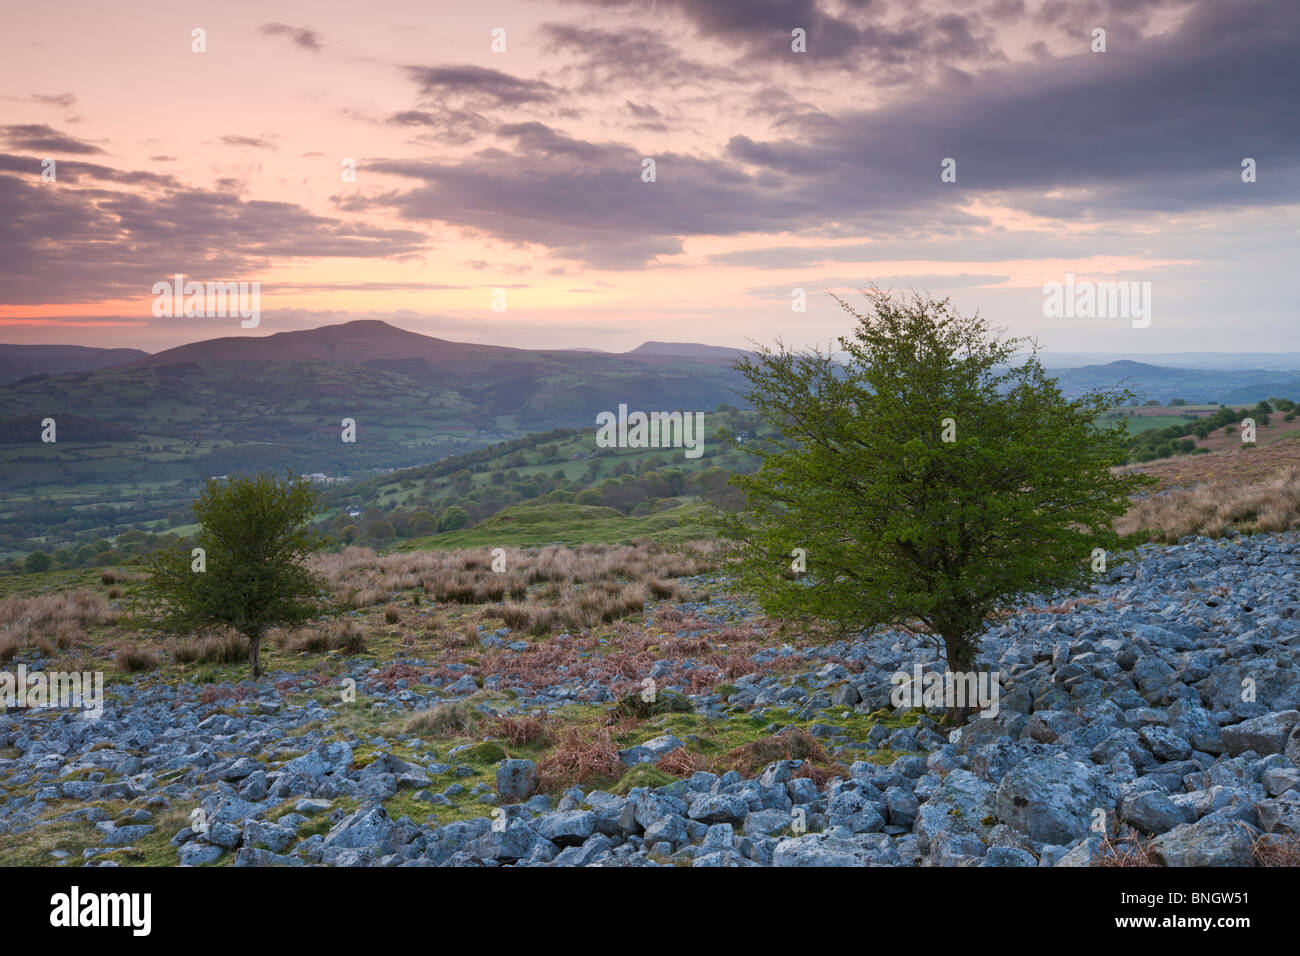 Sugarloaf Mountain at dawn from Llangattock Escarpment, Brecon Beacons National Park, Powys, Wales. - Stock Image